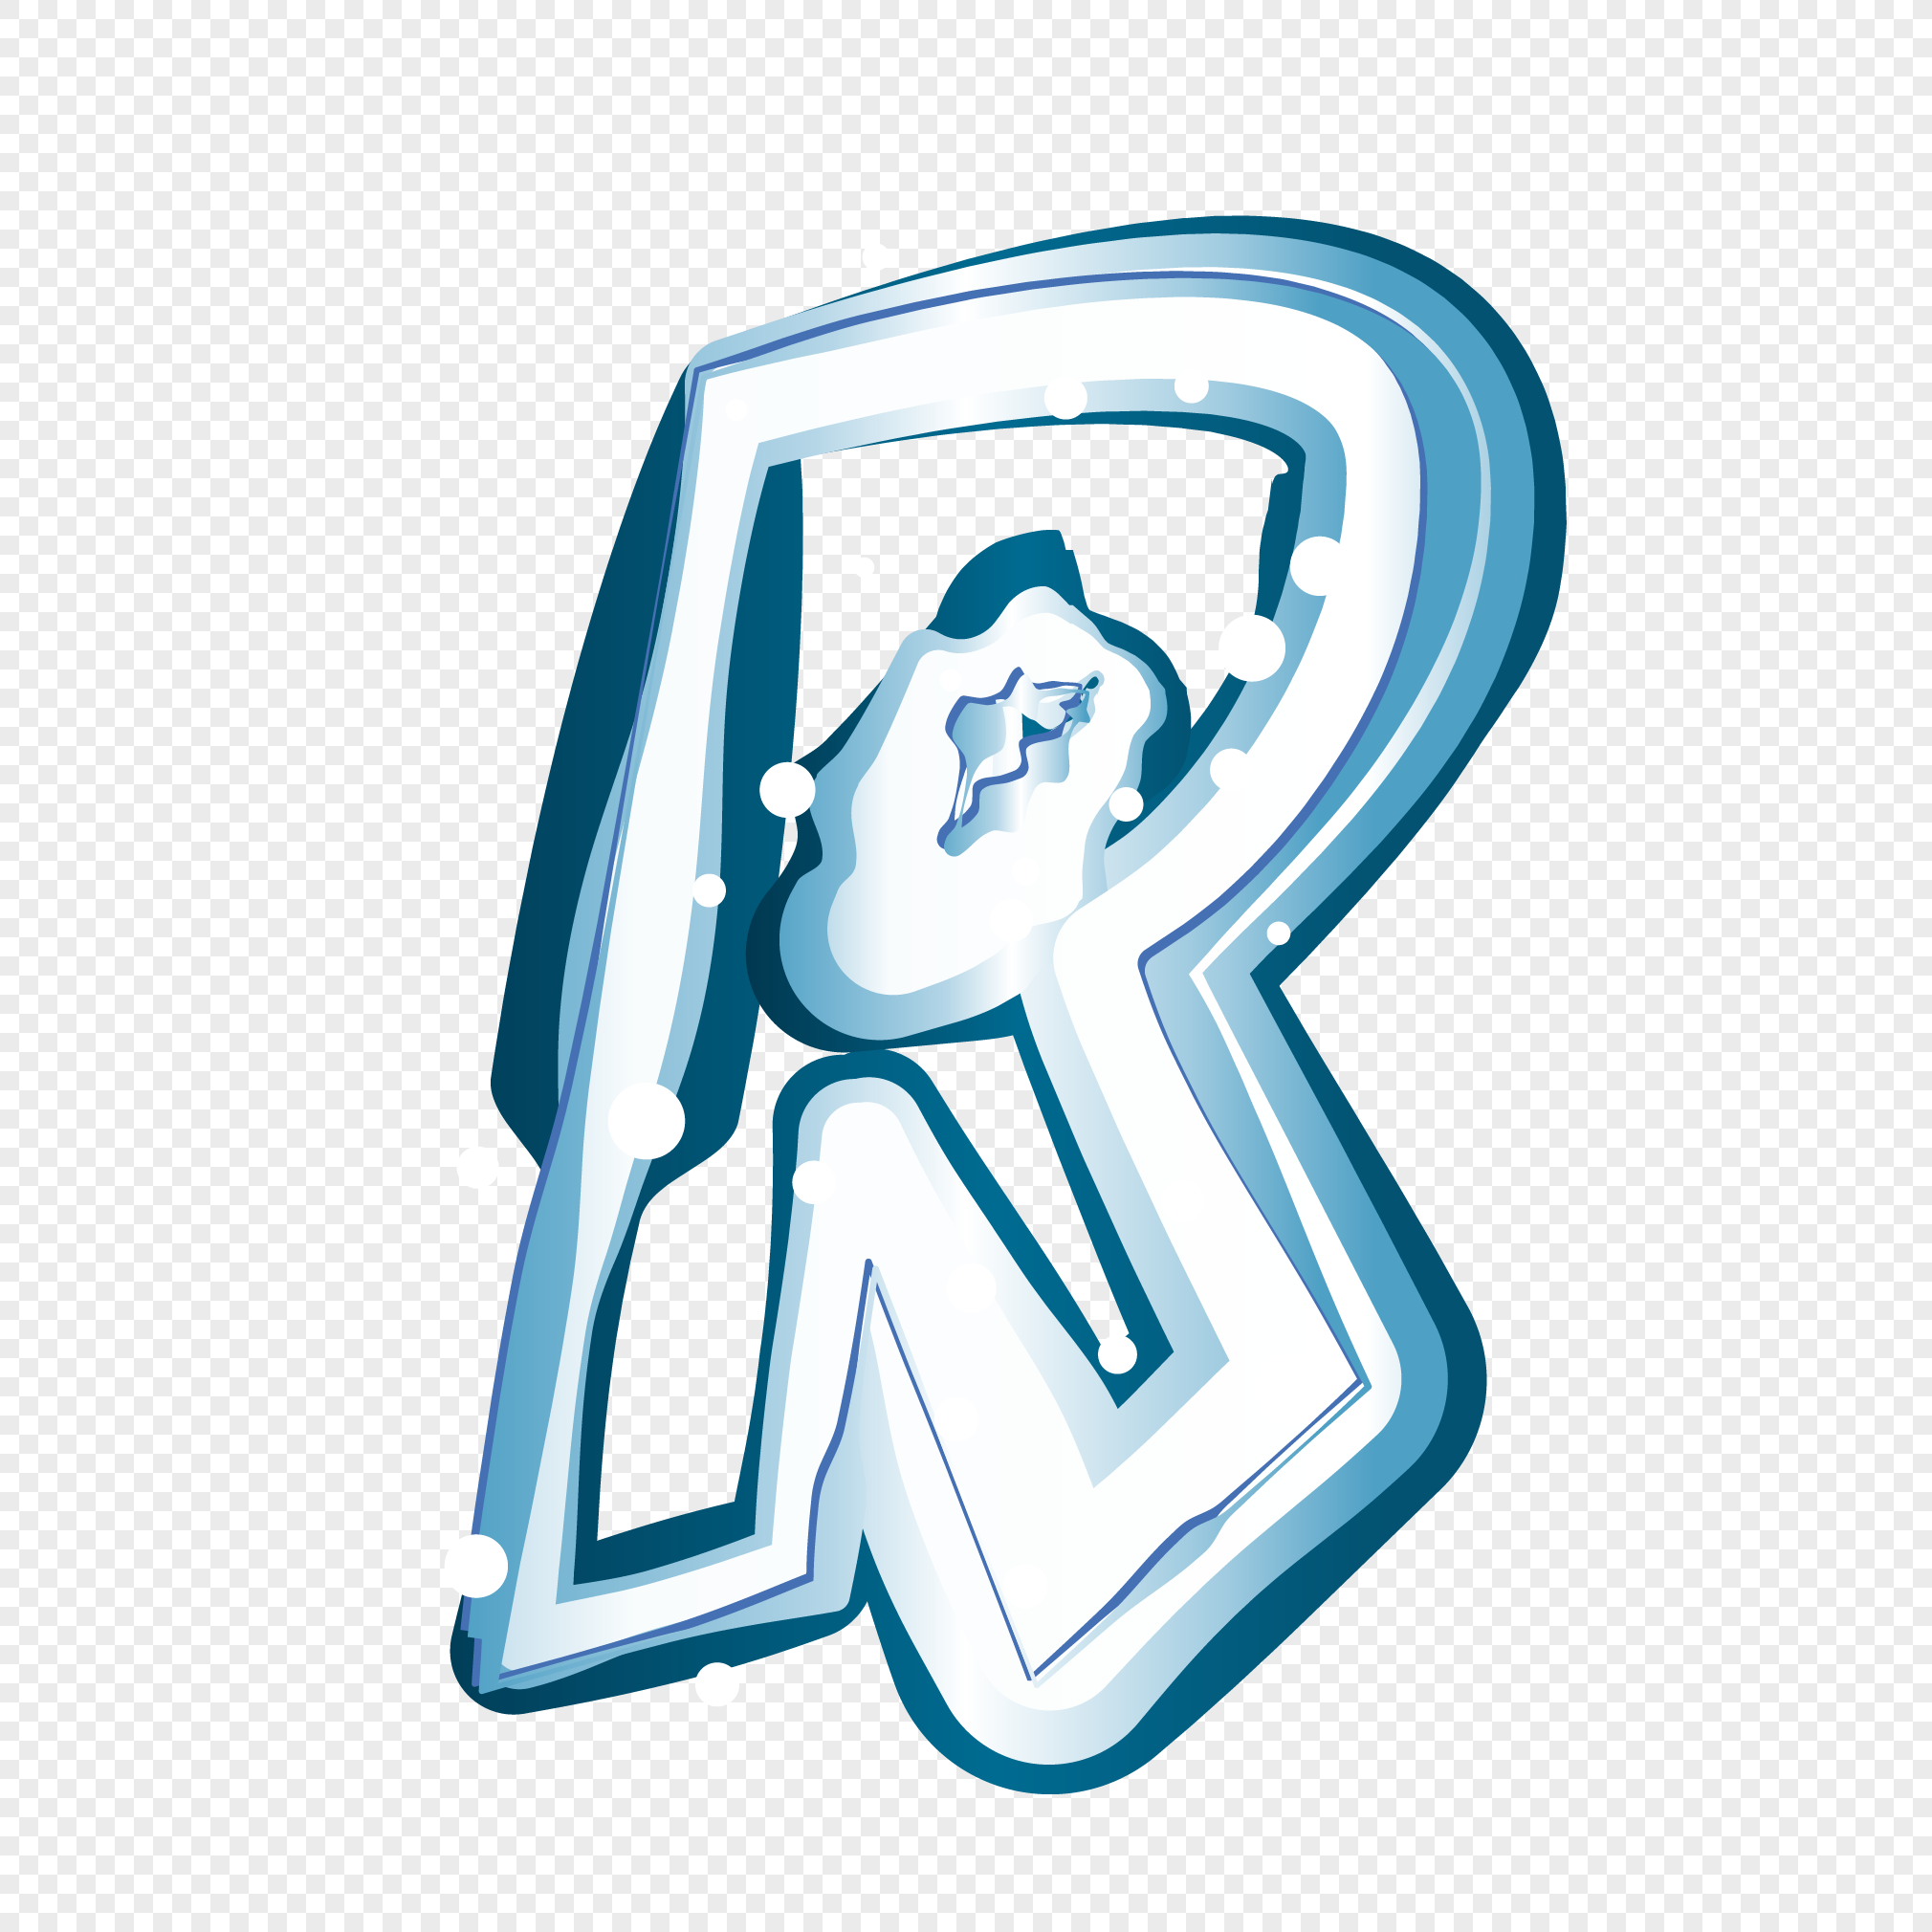 Creative Ice And Snow Letter R Vector Element Png Image Picture Free